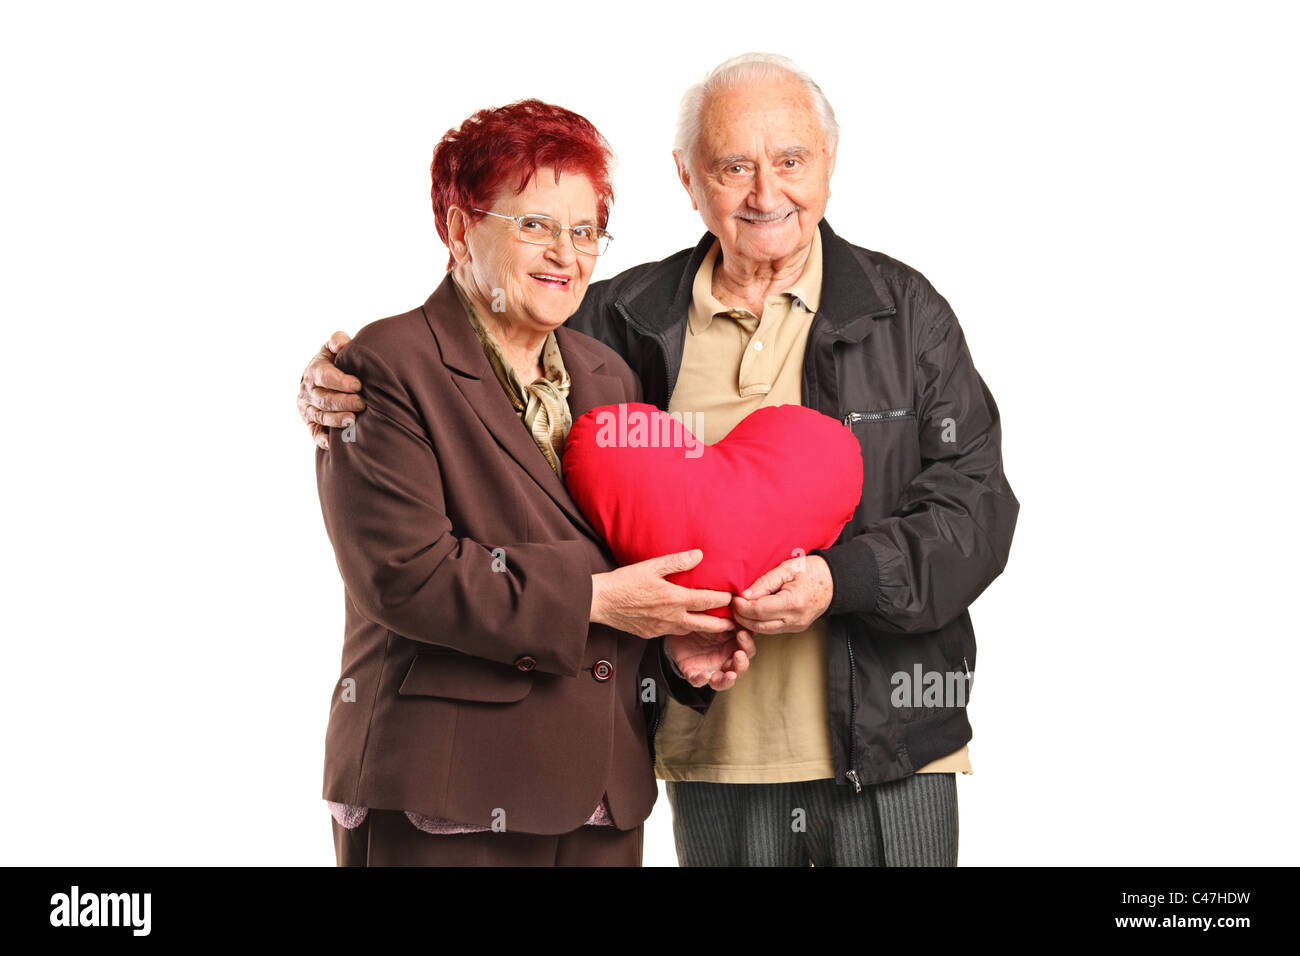 Man Shaped Pillow Senior Man And Woman Holding A Heart Shaped Pillow Stock Photo